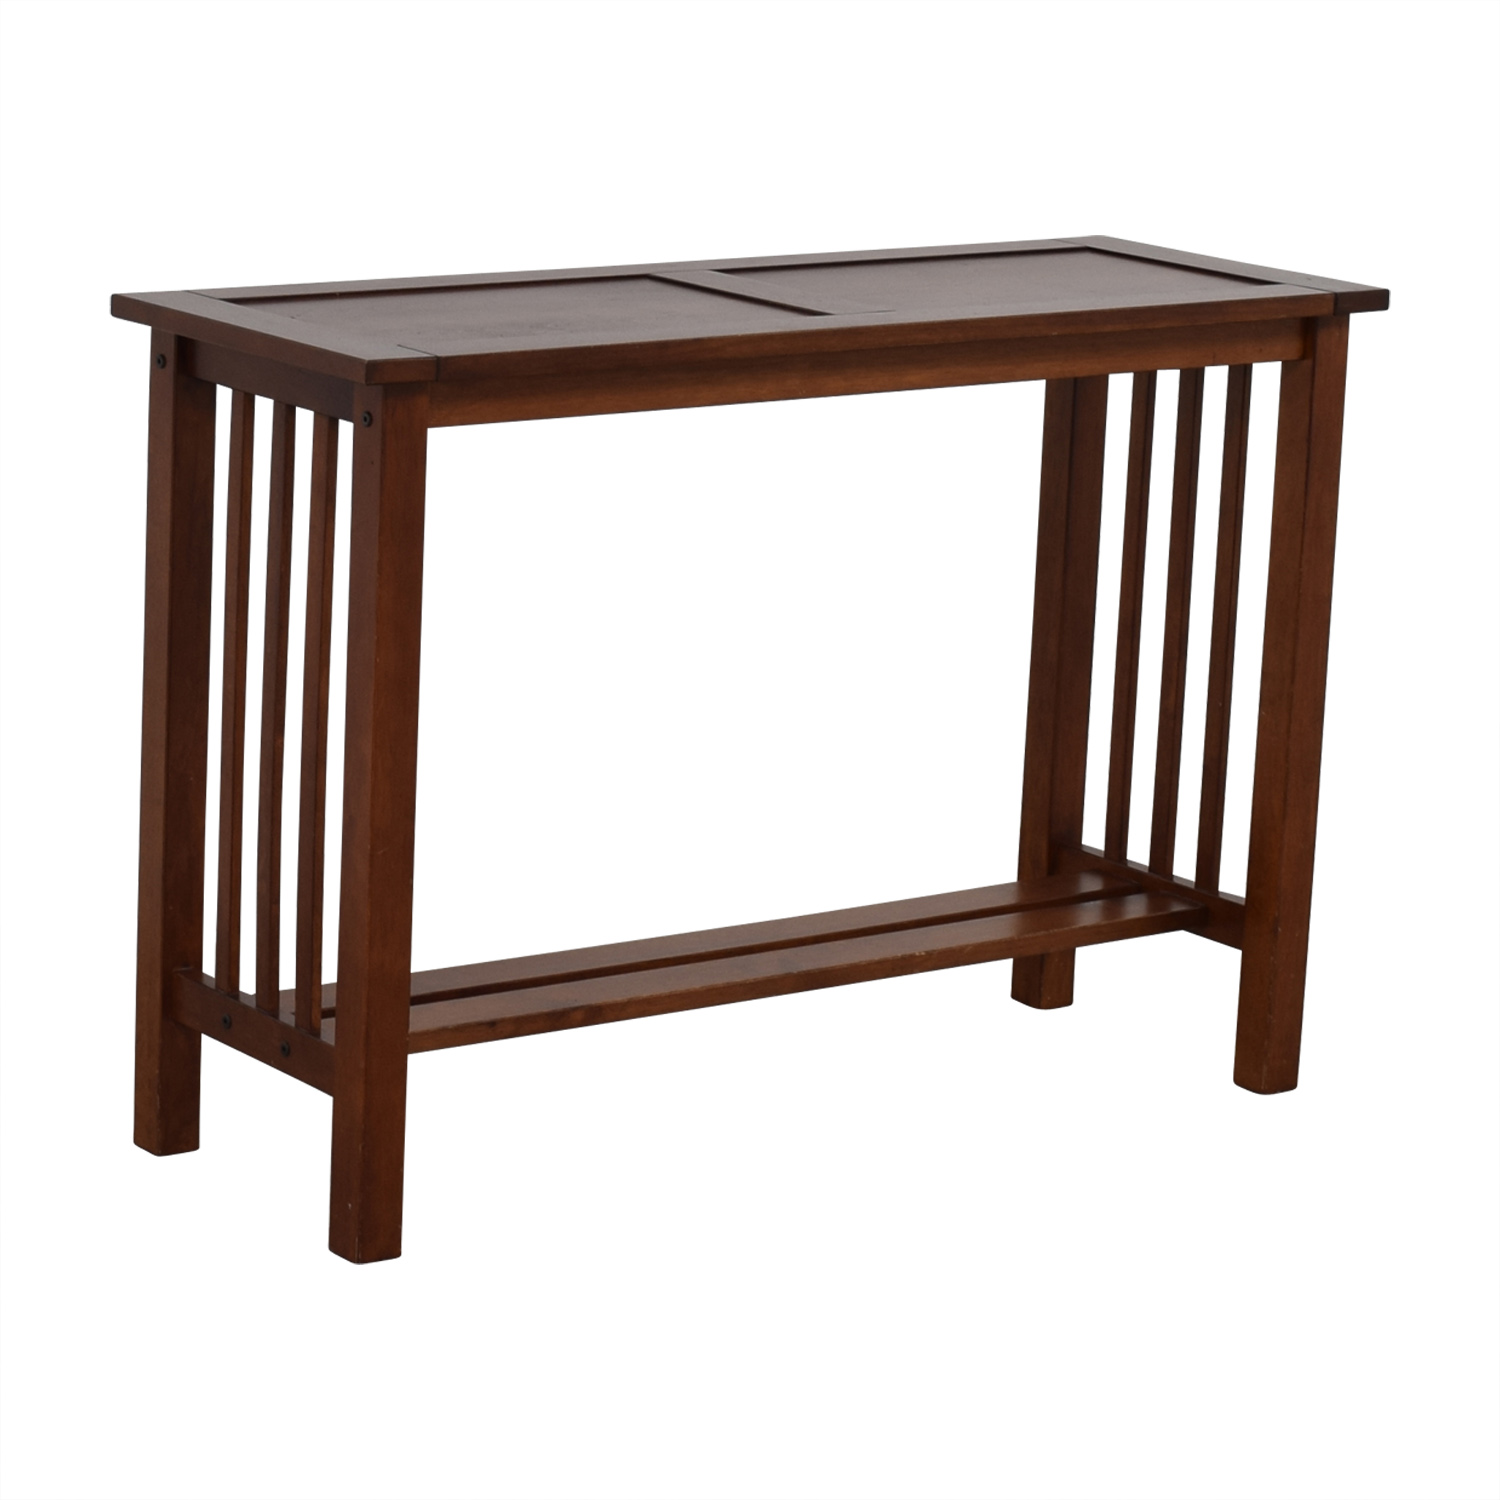 buy Crate & Barrel Console Table Crate & Barrel